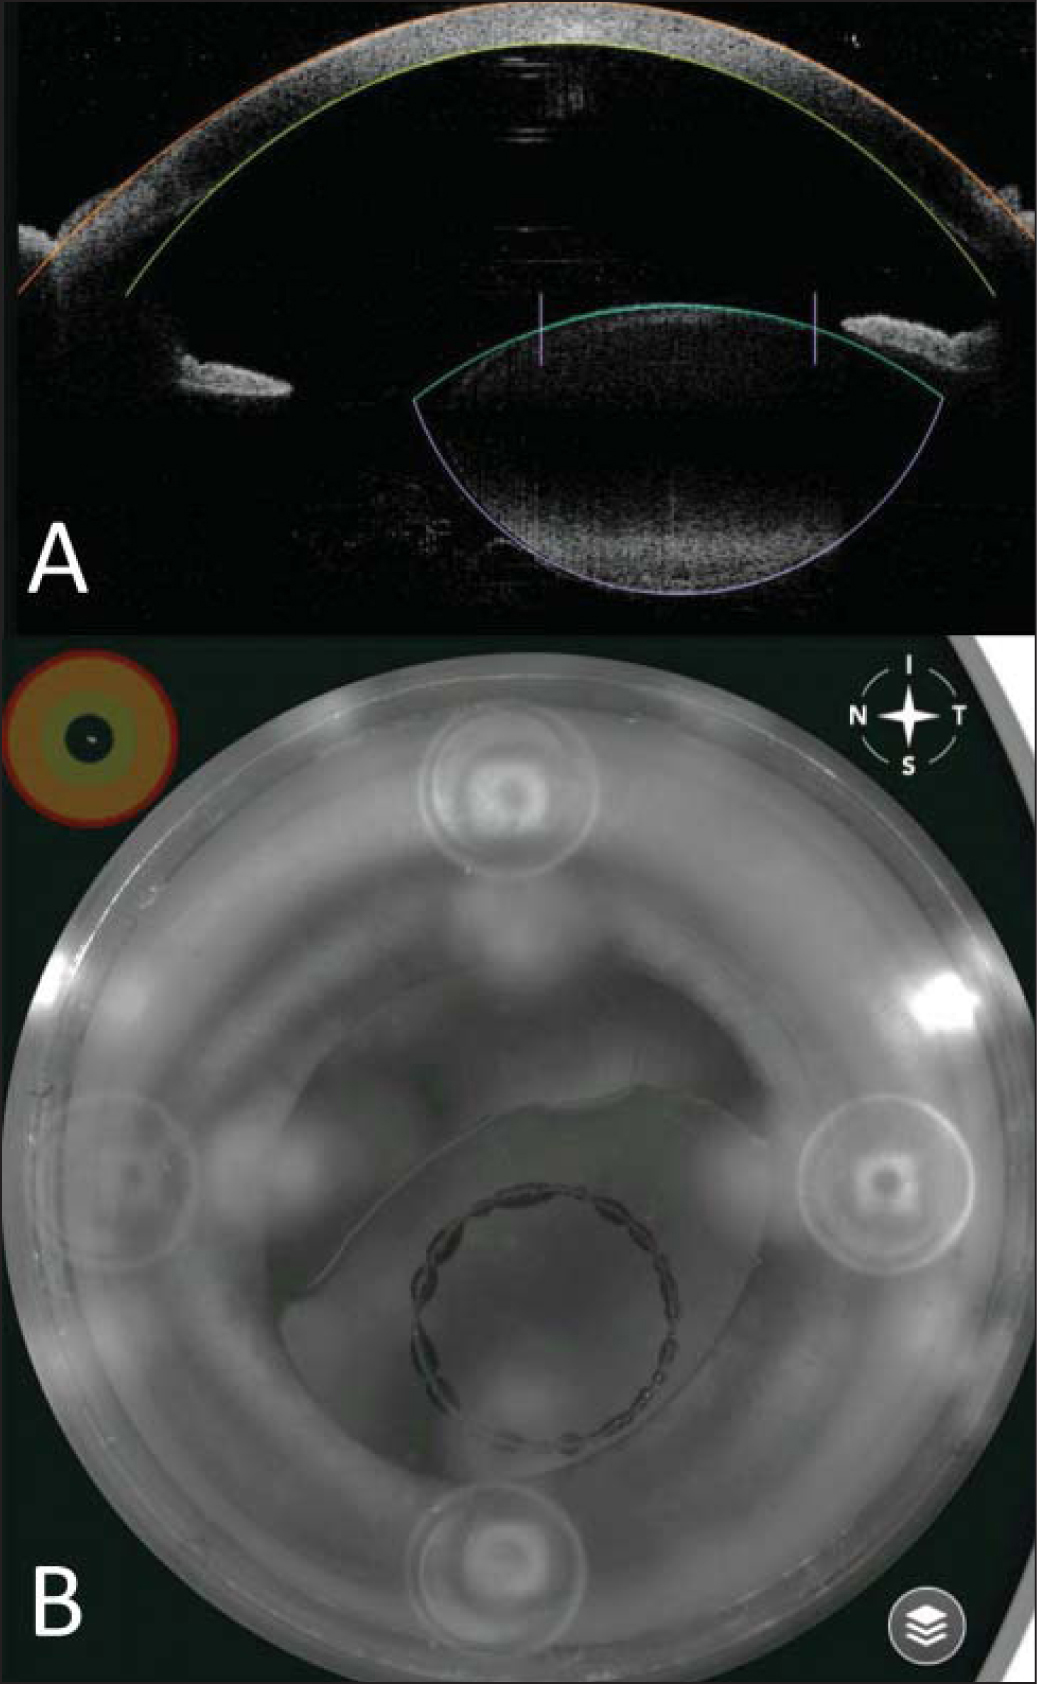 (A) High-resolution optical coherence tomography screenshot showing the automatically detected scanned capsule center (sagittal view). (B) Screenshot of the infrared camera during capsulotomy creation, centered on the scanned capsule.